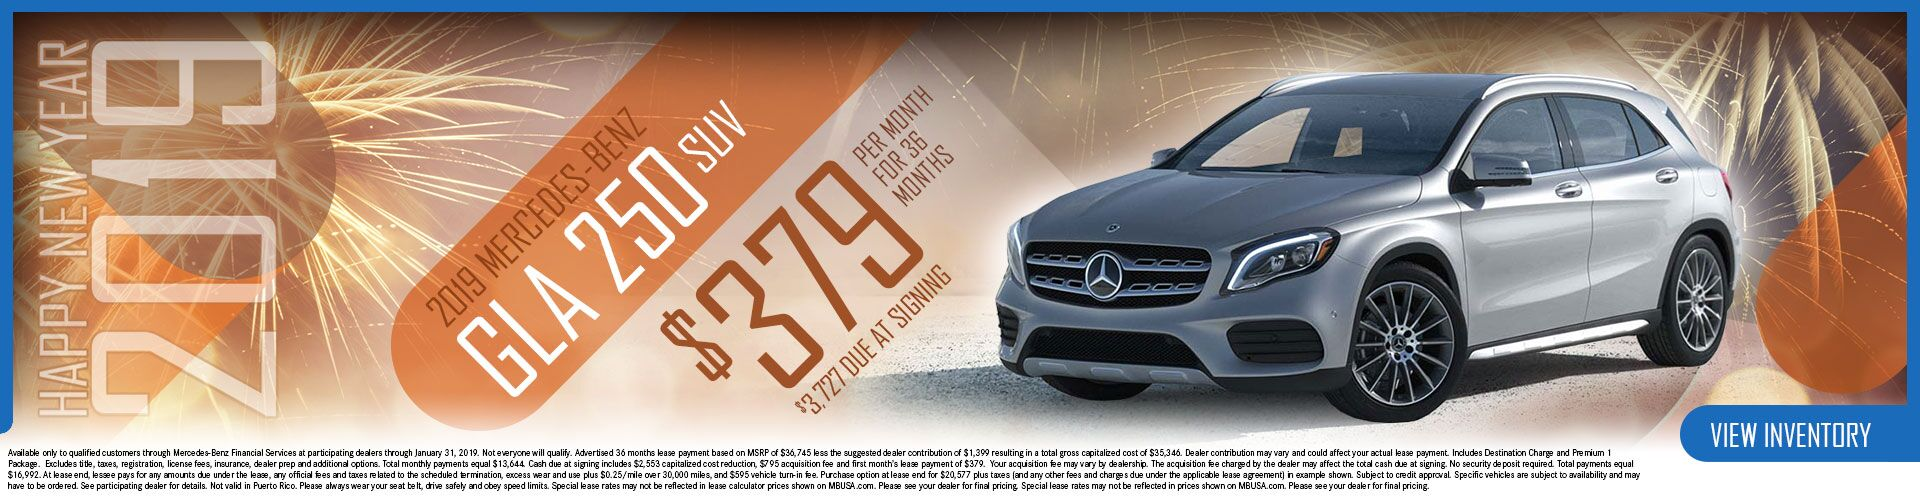 Mercedes Benz Dealership Scottsdale Az Used Cars Mercedes Benz Of